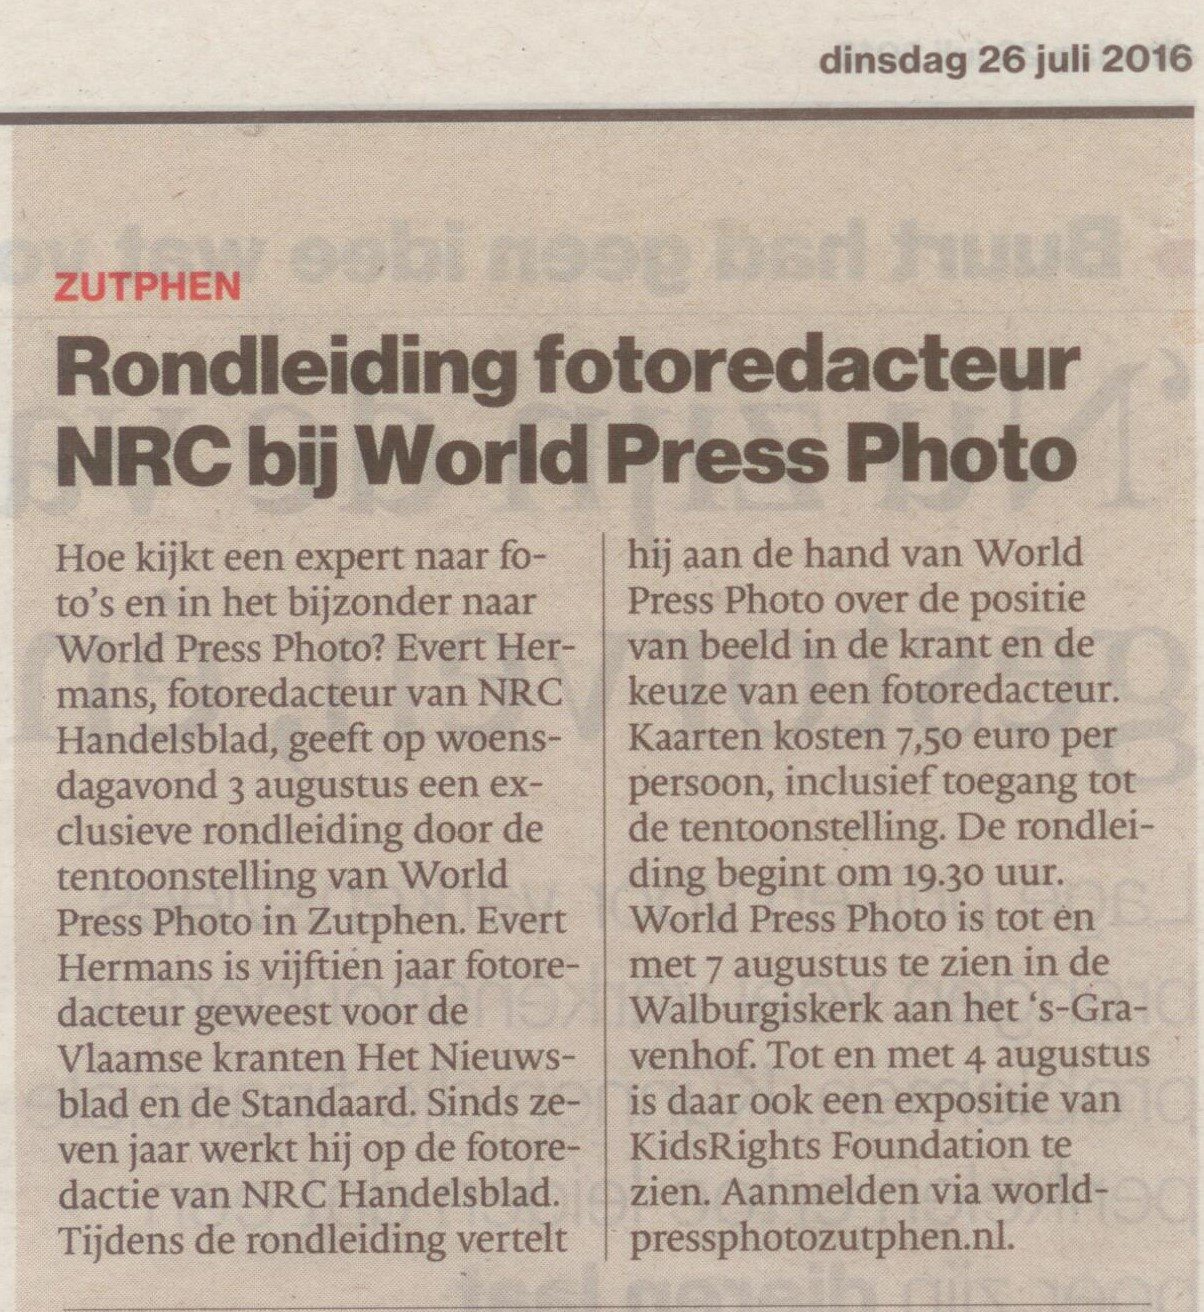 160726 De Stentor Rondleiding fotoredacteur NRC bij World Press Photo